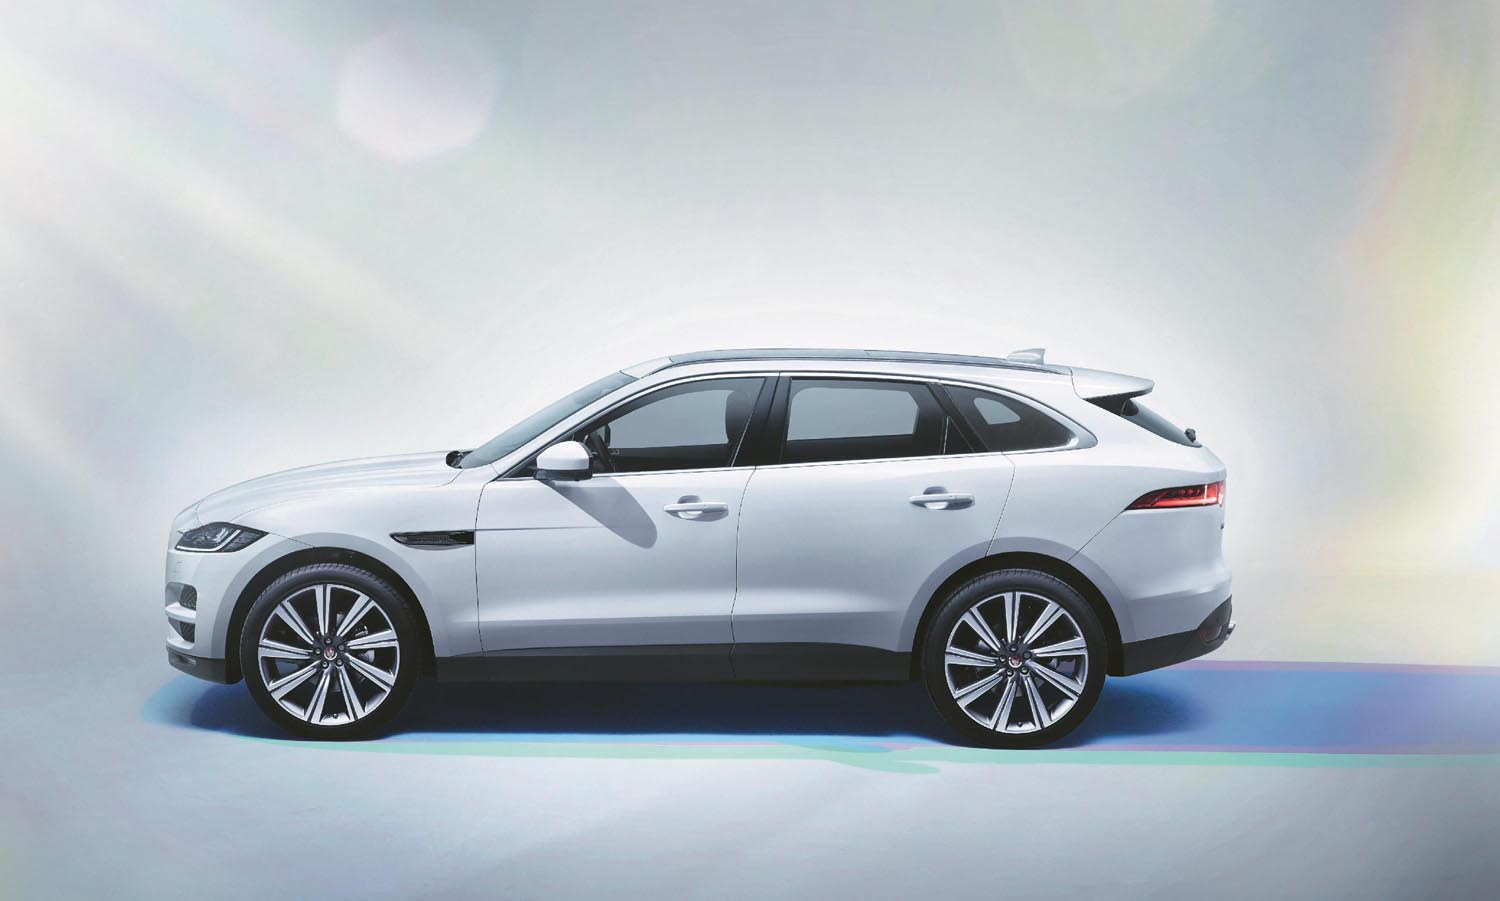 Hire A Jaguar F Pace With Exclusive Go In Mallorca